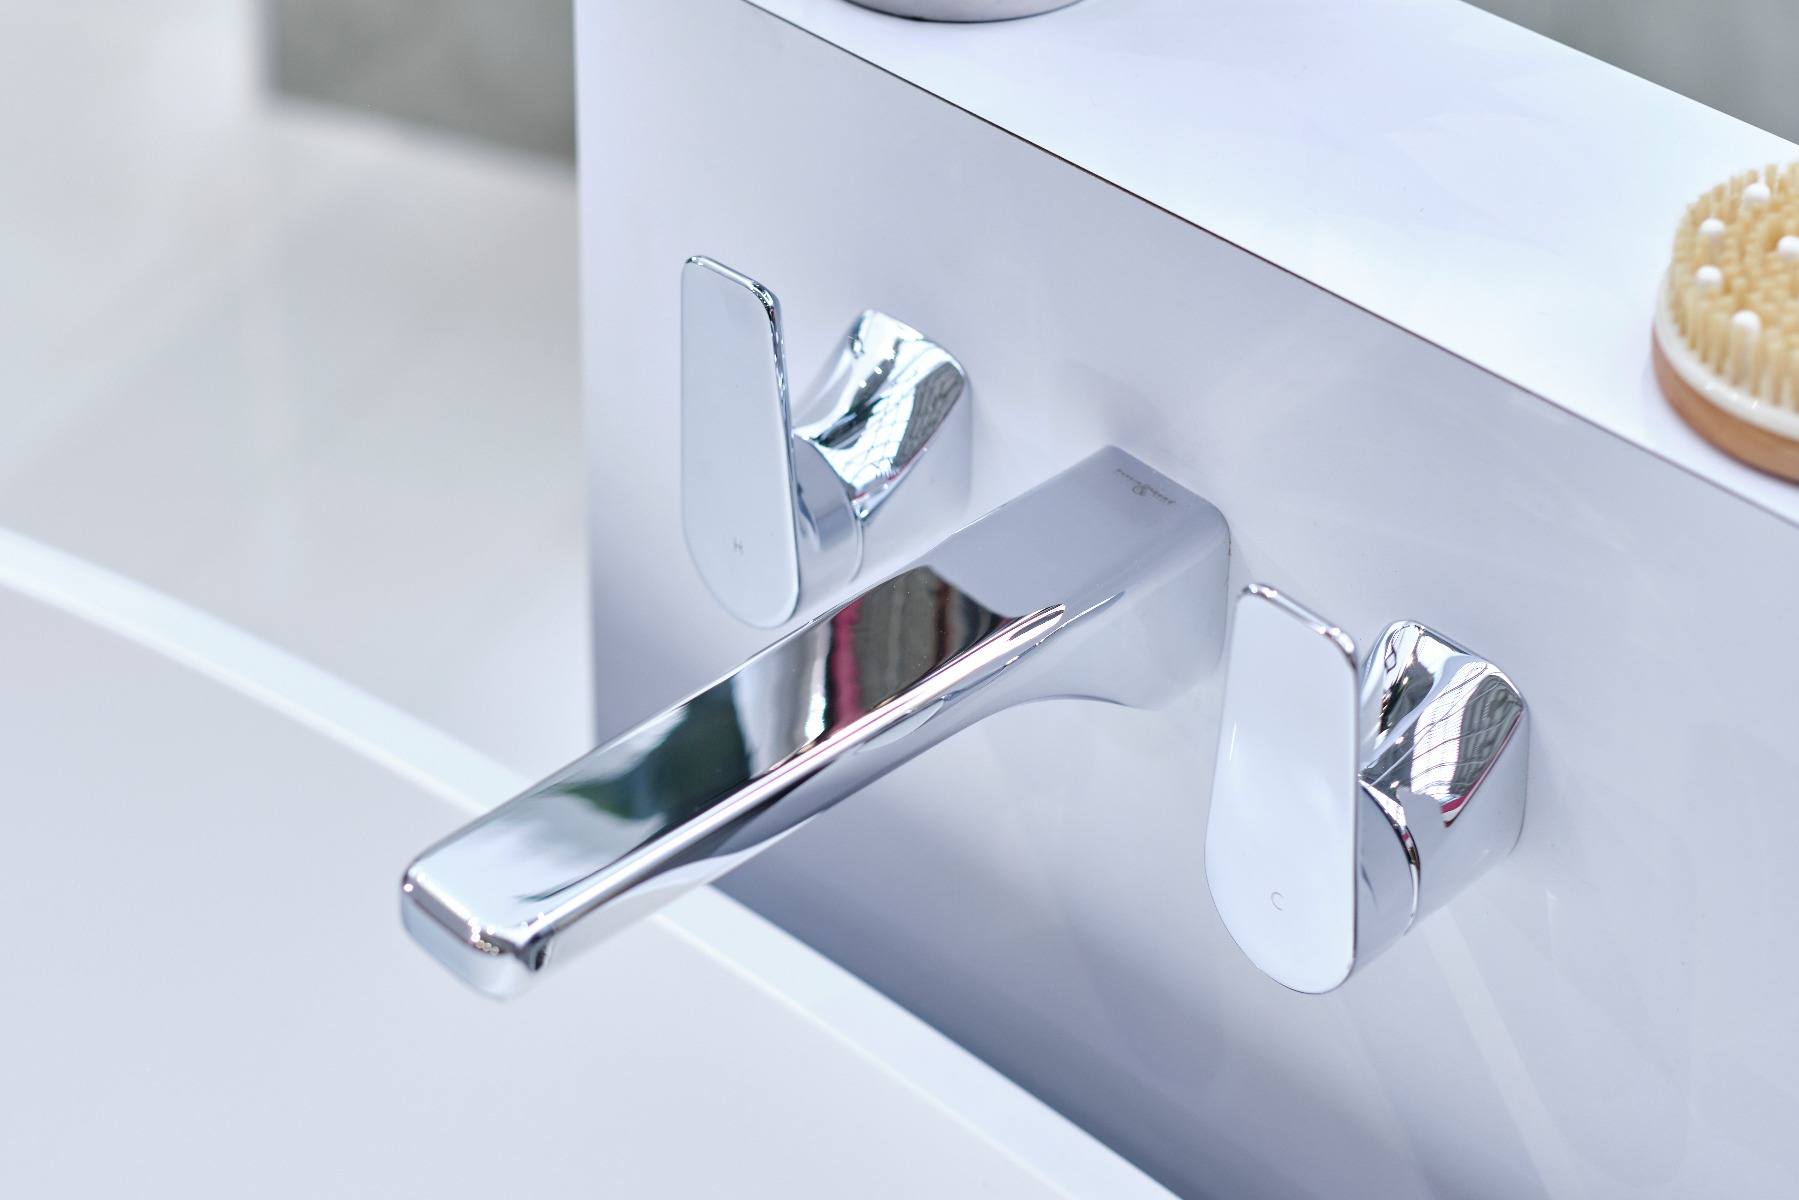 Hoxton contemporary bath filler in polished chrome